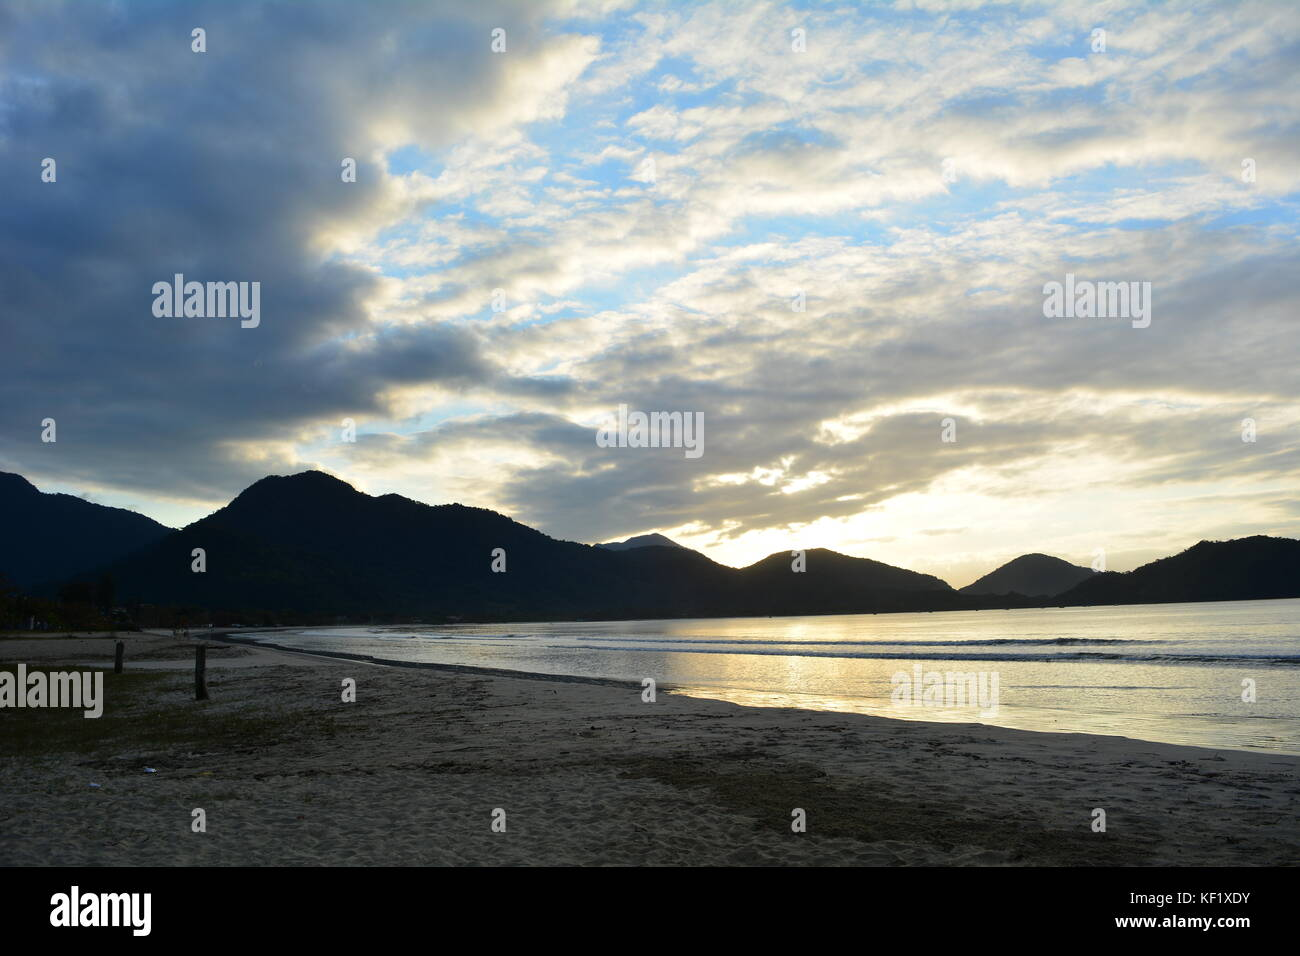 Sunrise behind the mountains, with reflection in the sea, on the beach of Perequê-Açu in Ubatuba, Brazil - Stock Image